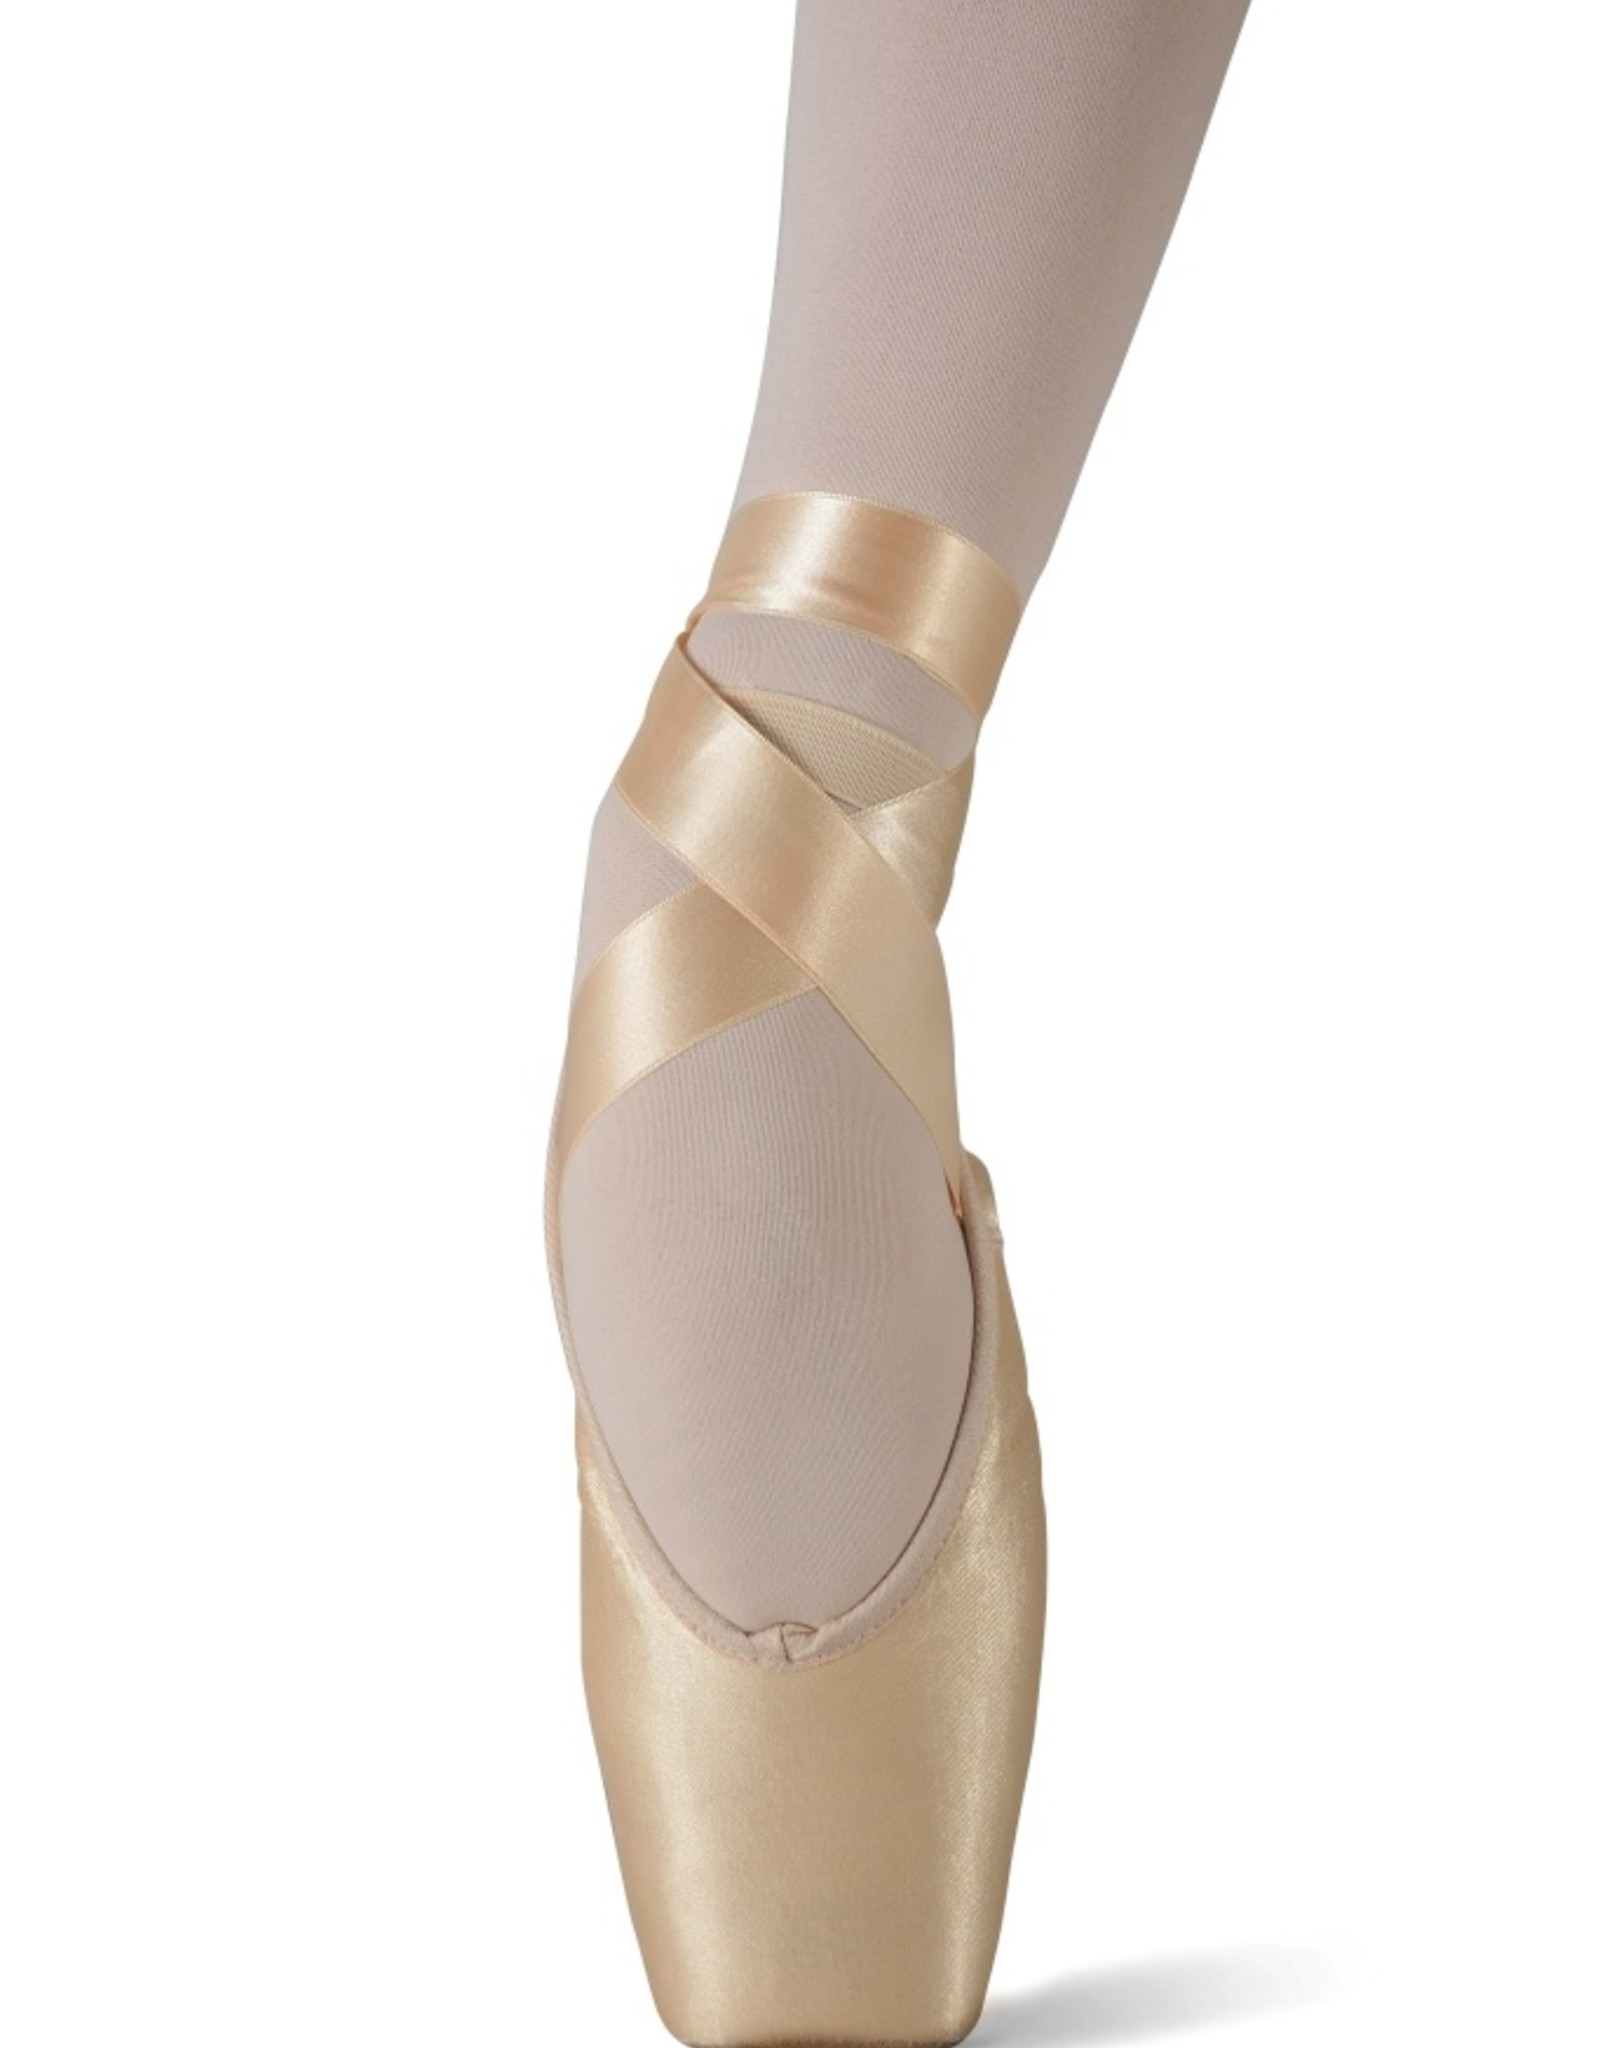 MERLET DIVA MEDIUM SOLE 3/4 SHANK POINTE SHOES